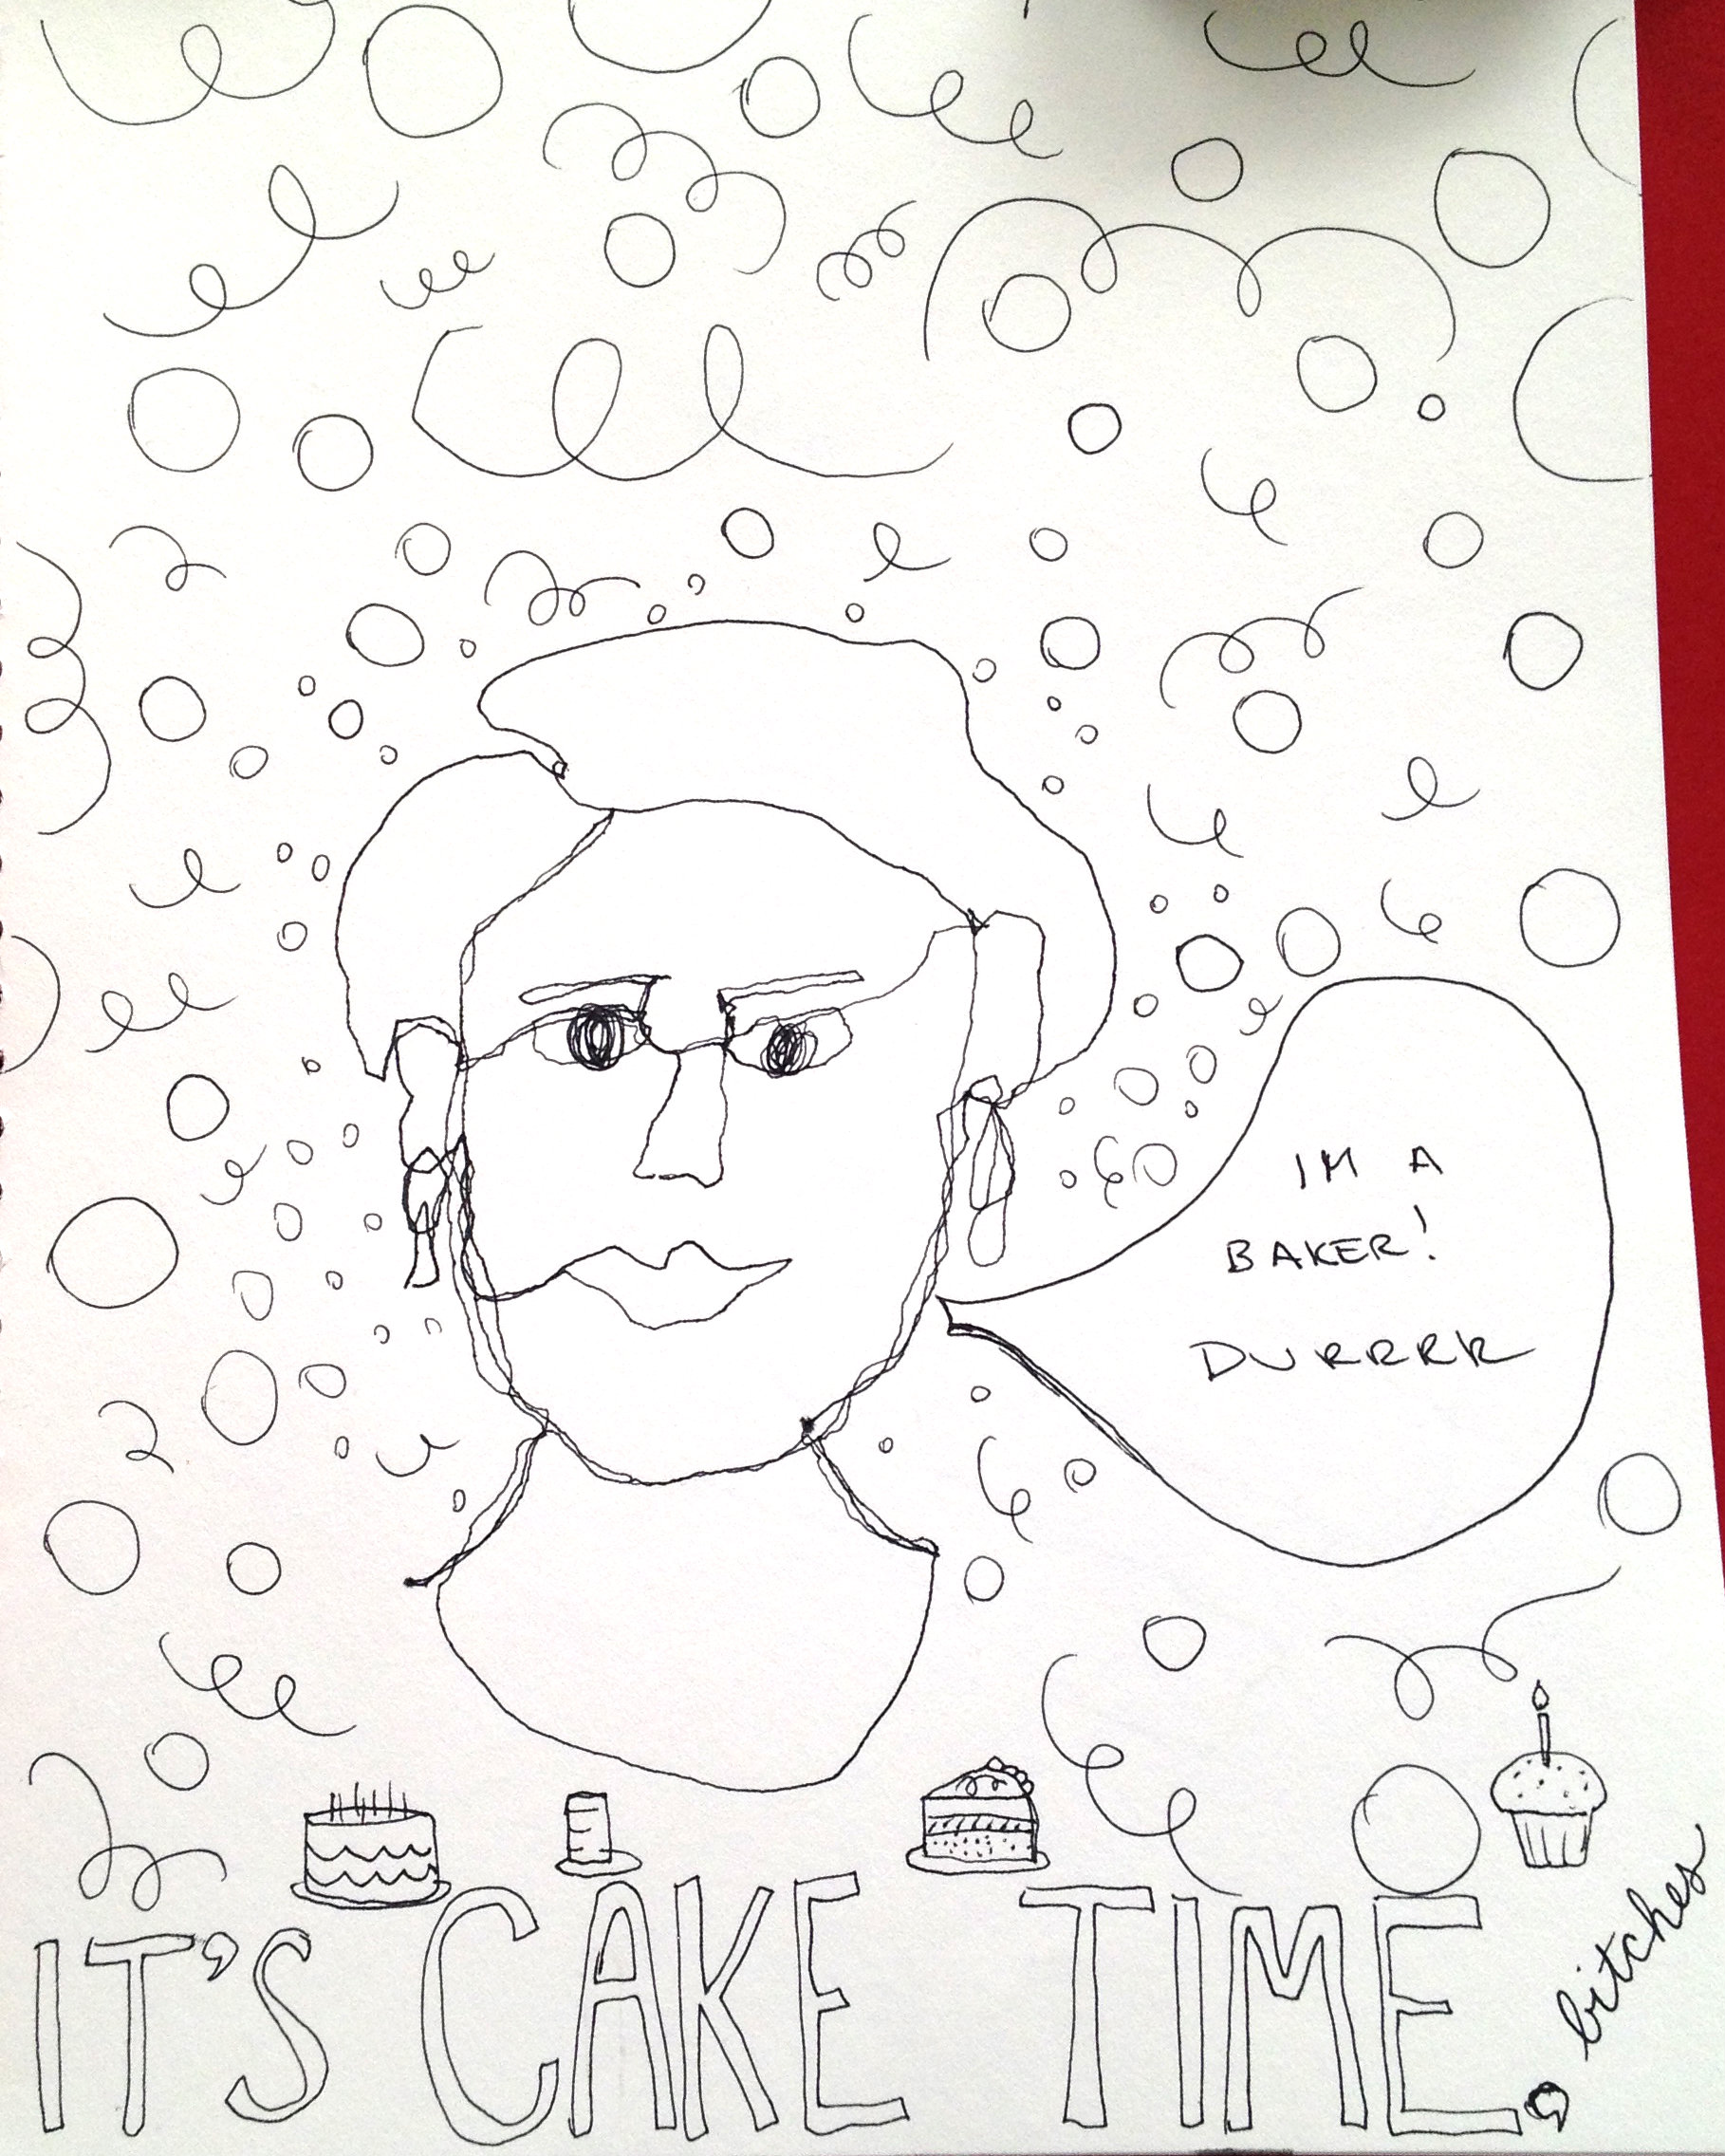 My roommate drew a portrait of our friend, a fantastic baker. I decorated it.